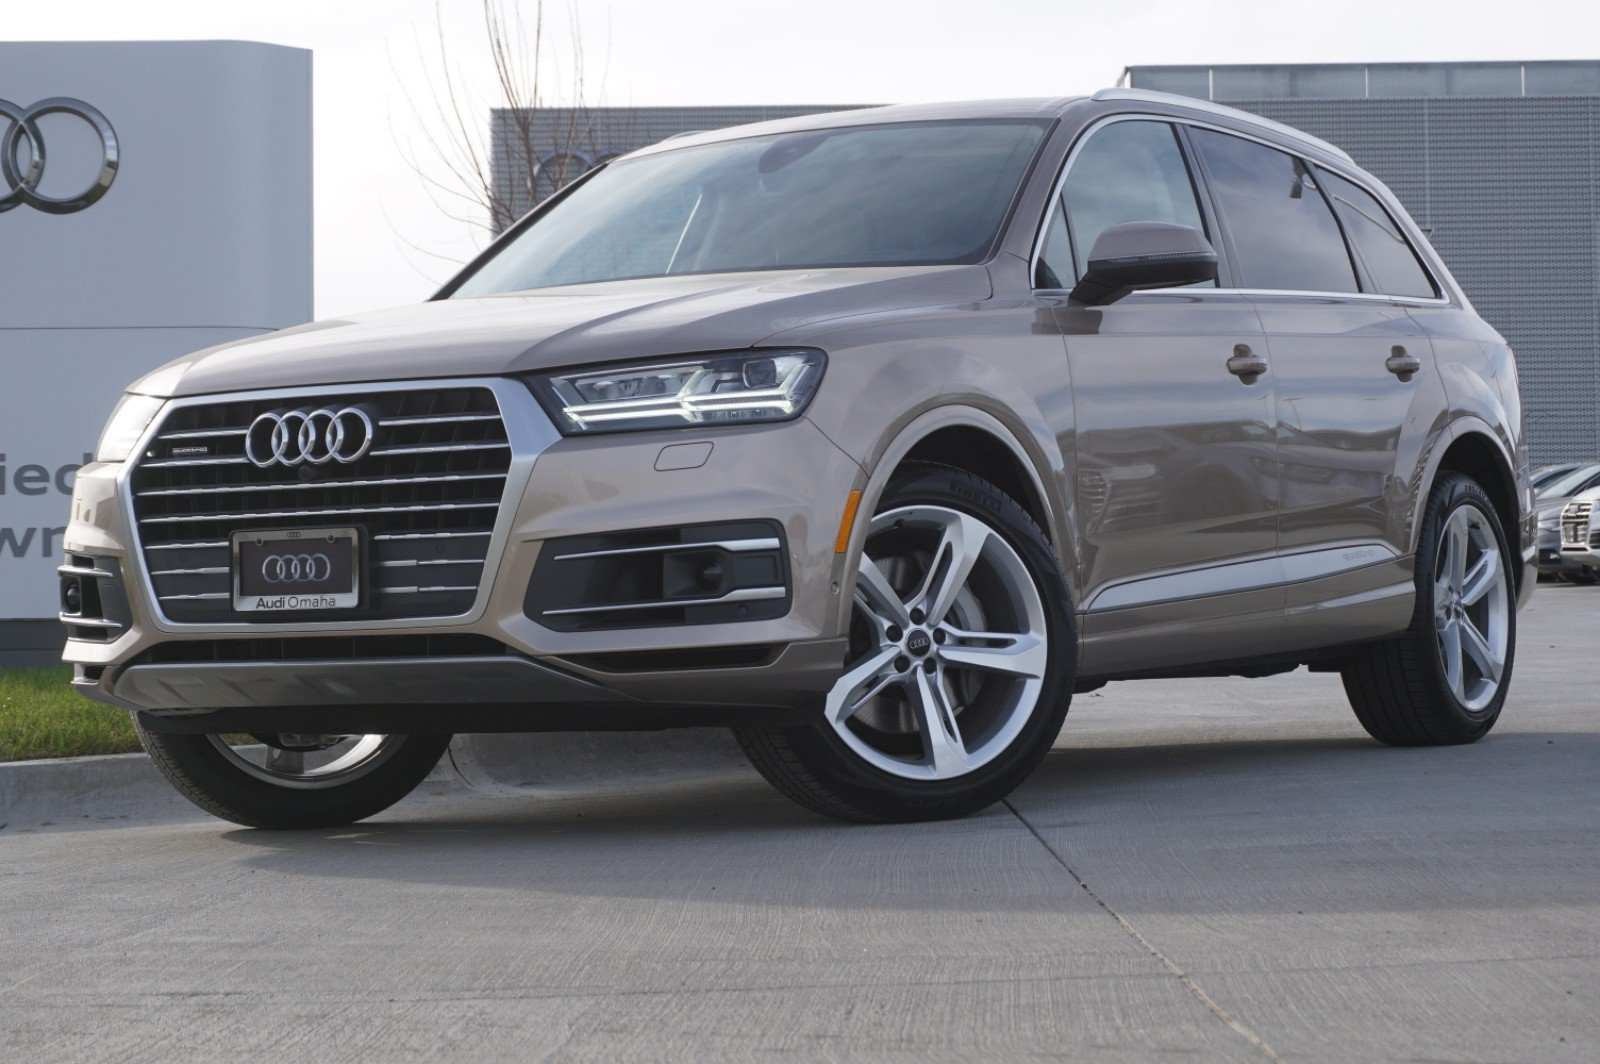 15 New 2019 Audi Q7 Price And Release Date